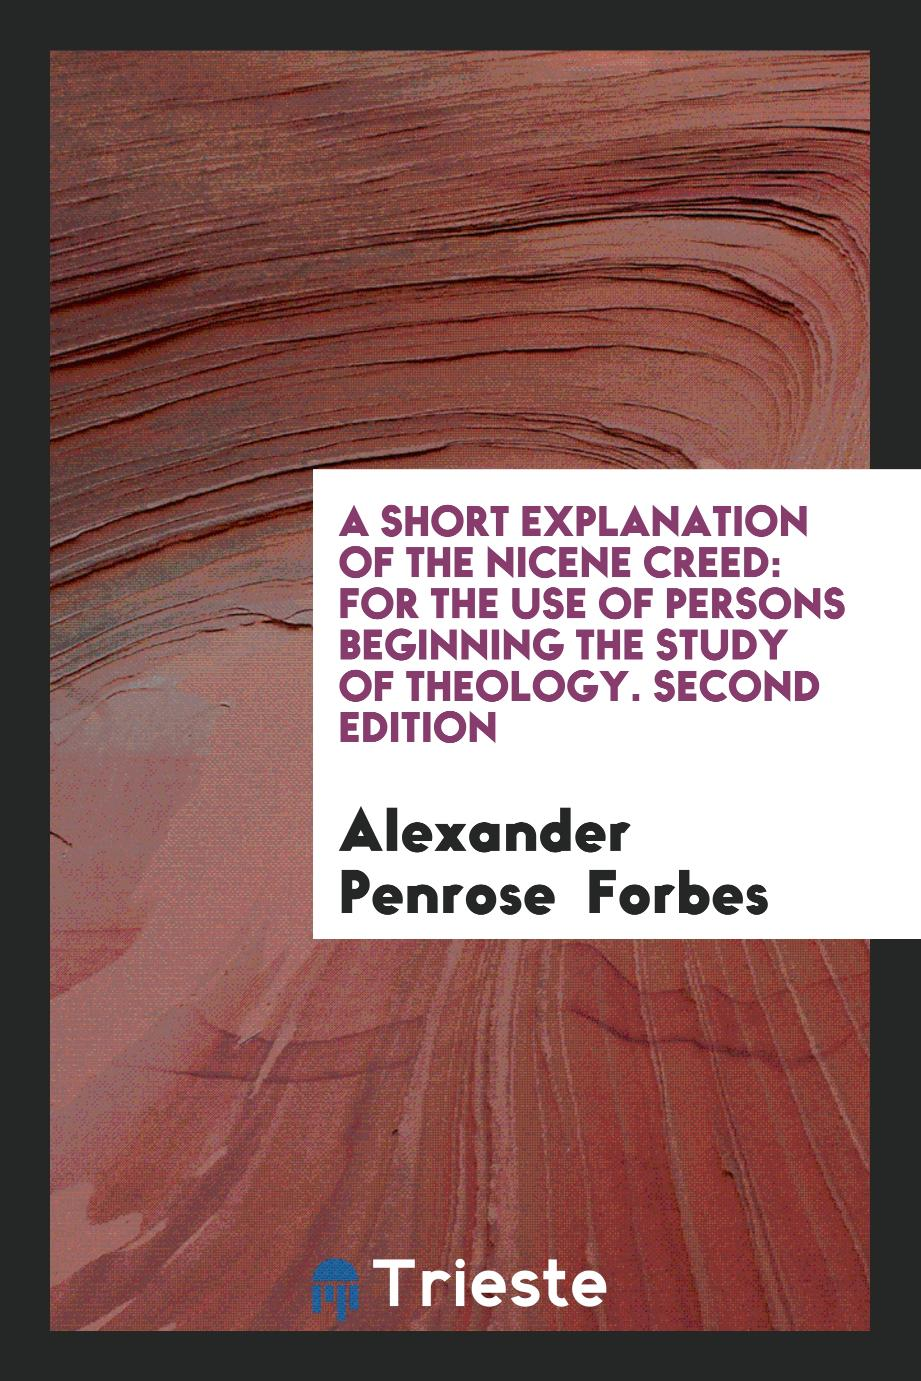 A Short Explanation of the Nicene Creed: For the Use of Persons Beginning the Study of Theology. Second Edition